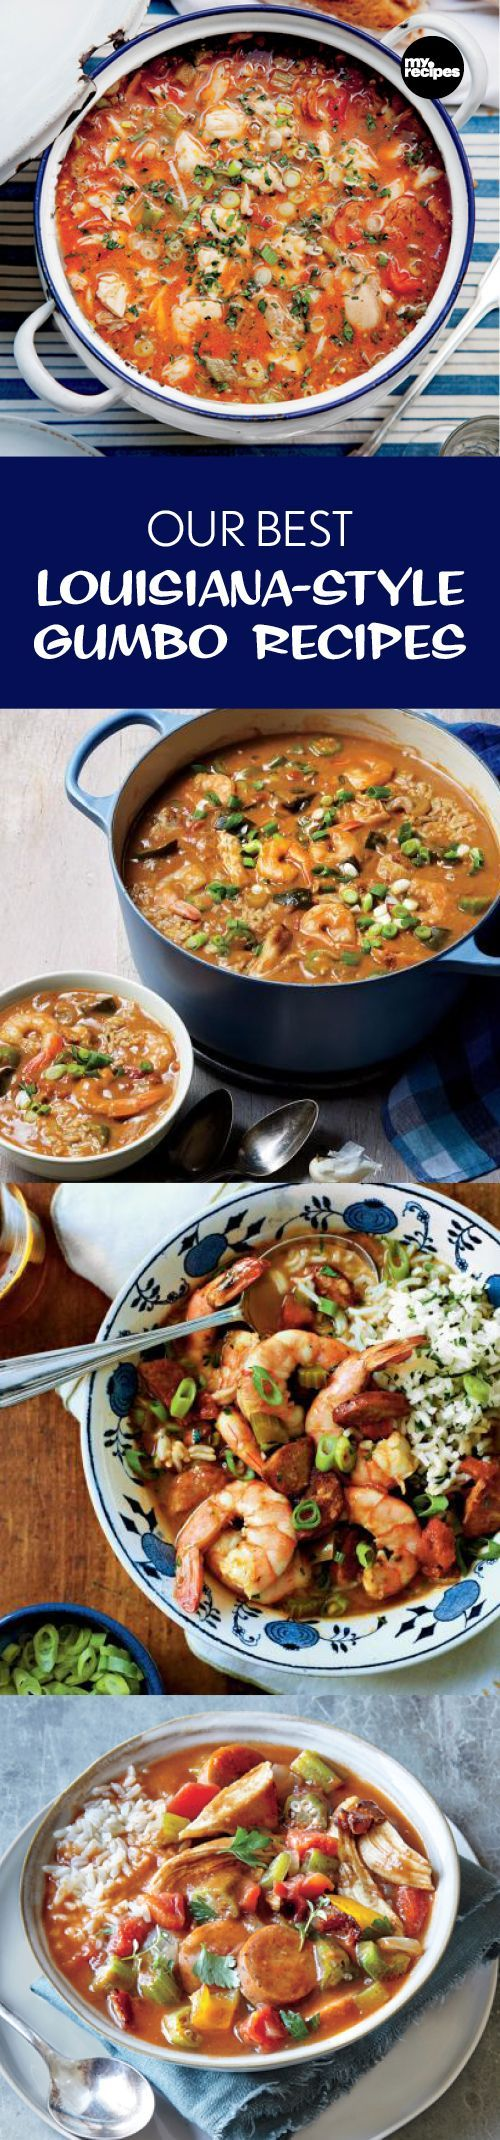 Our Best Louisiana-Style Gumbo Recipes | MyRecipes Whip up a big pot of the good stuff and bring some cajun flair to your neck of the woods with these fantastic down-home gumbo recipes. #chickenfoodrecipes